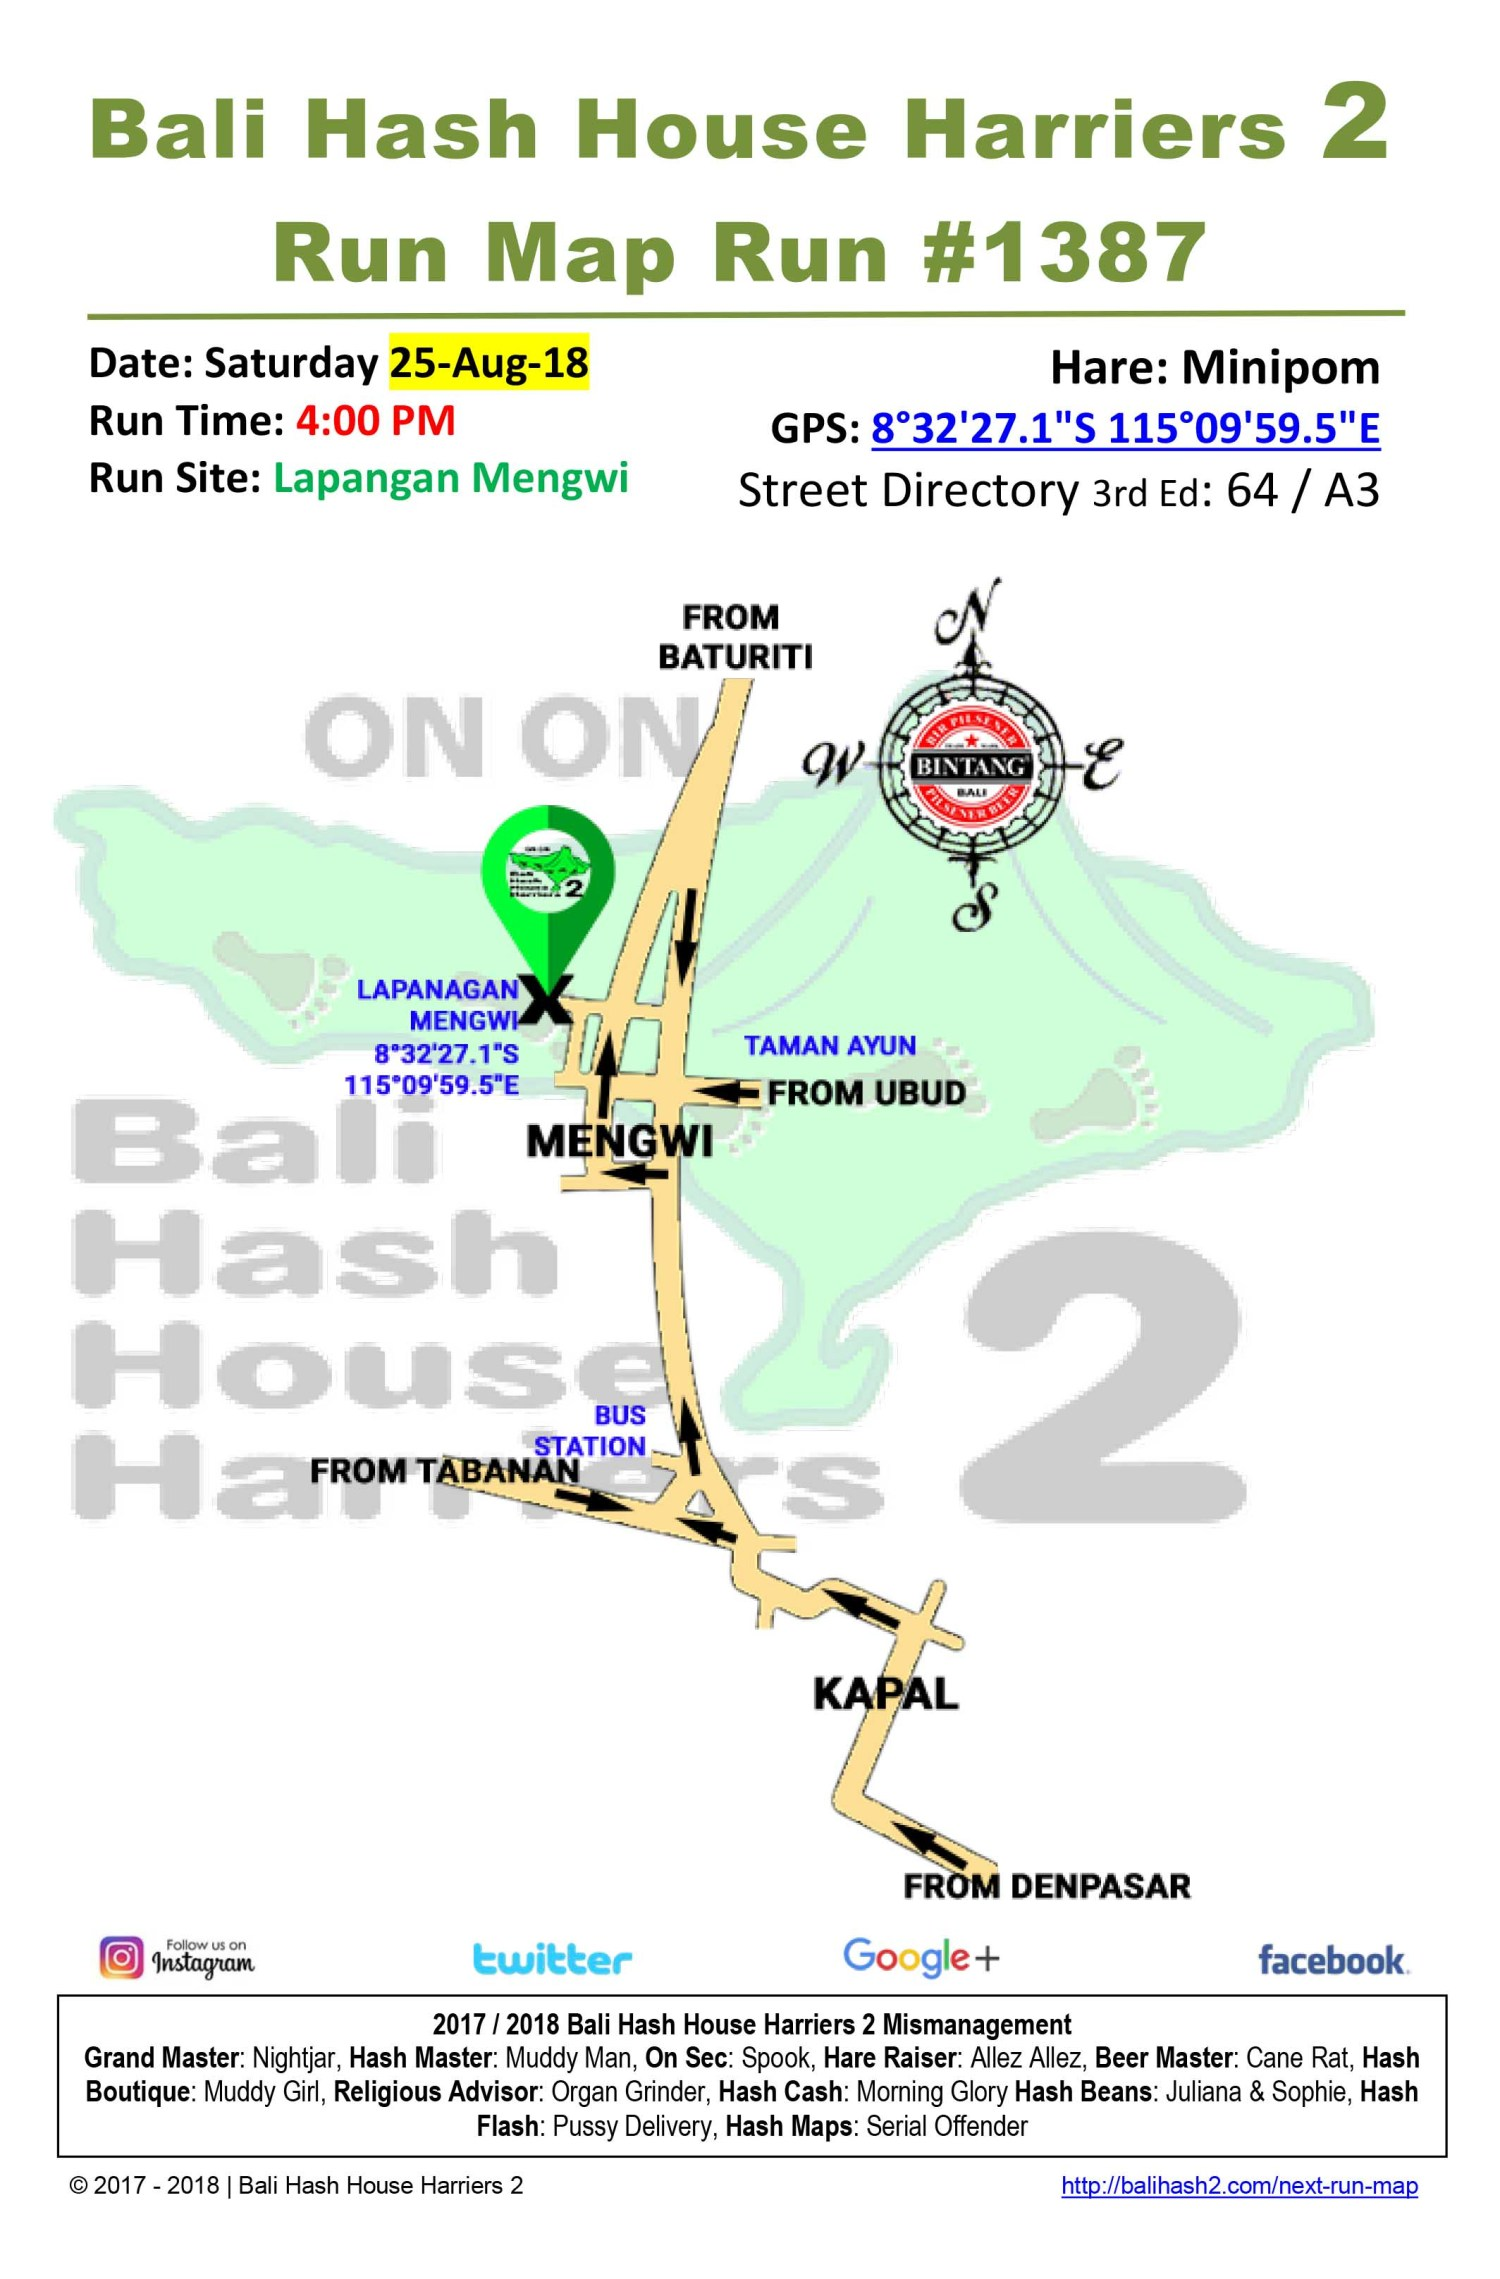 Bali Hash House Harriers 2 Run Map Run #1387 Lapangan Mengwi 25-Aug-18